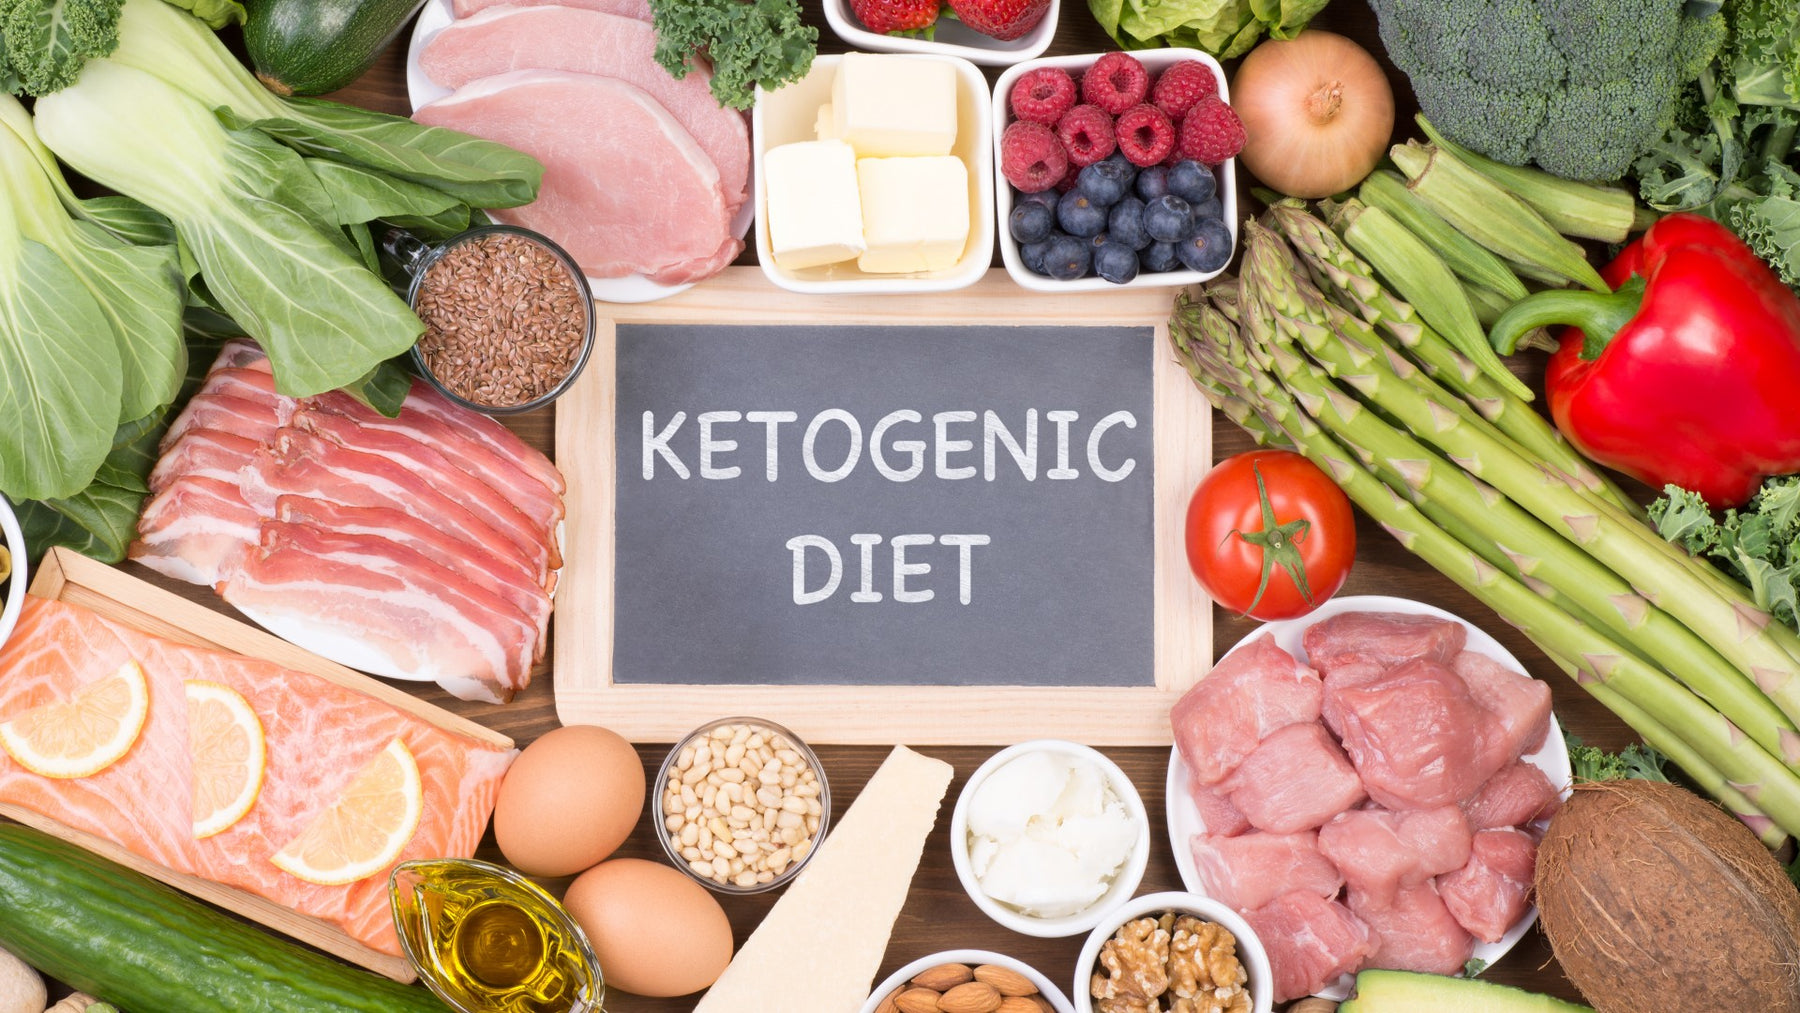 Keto Diet: Can it Help Diabetes & Obesity?